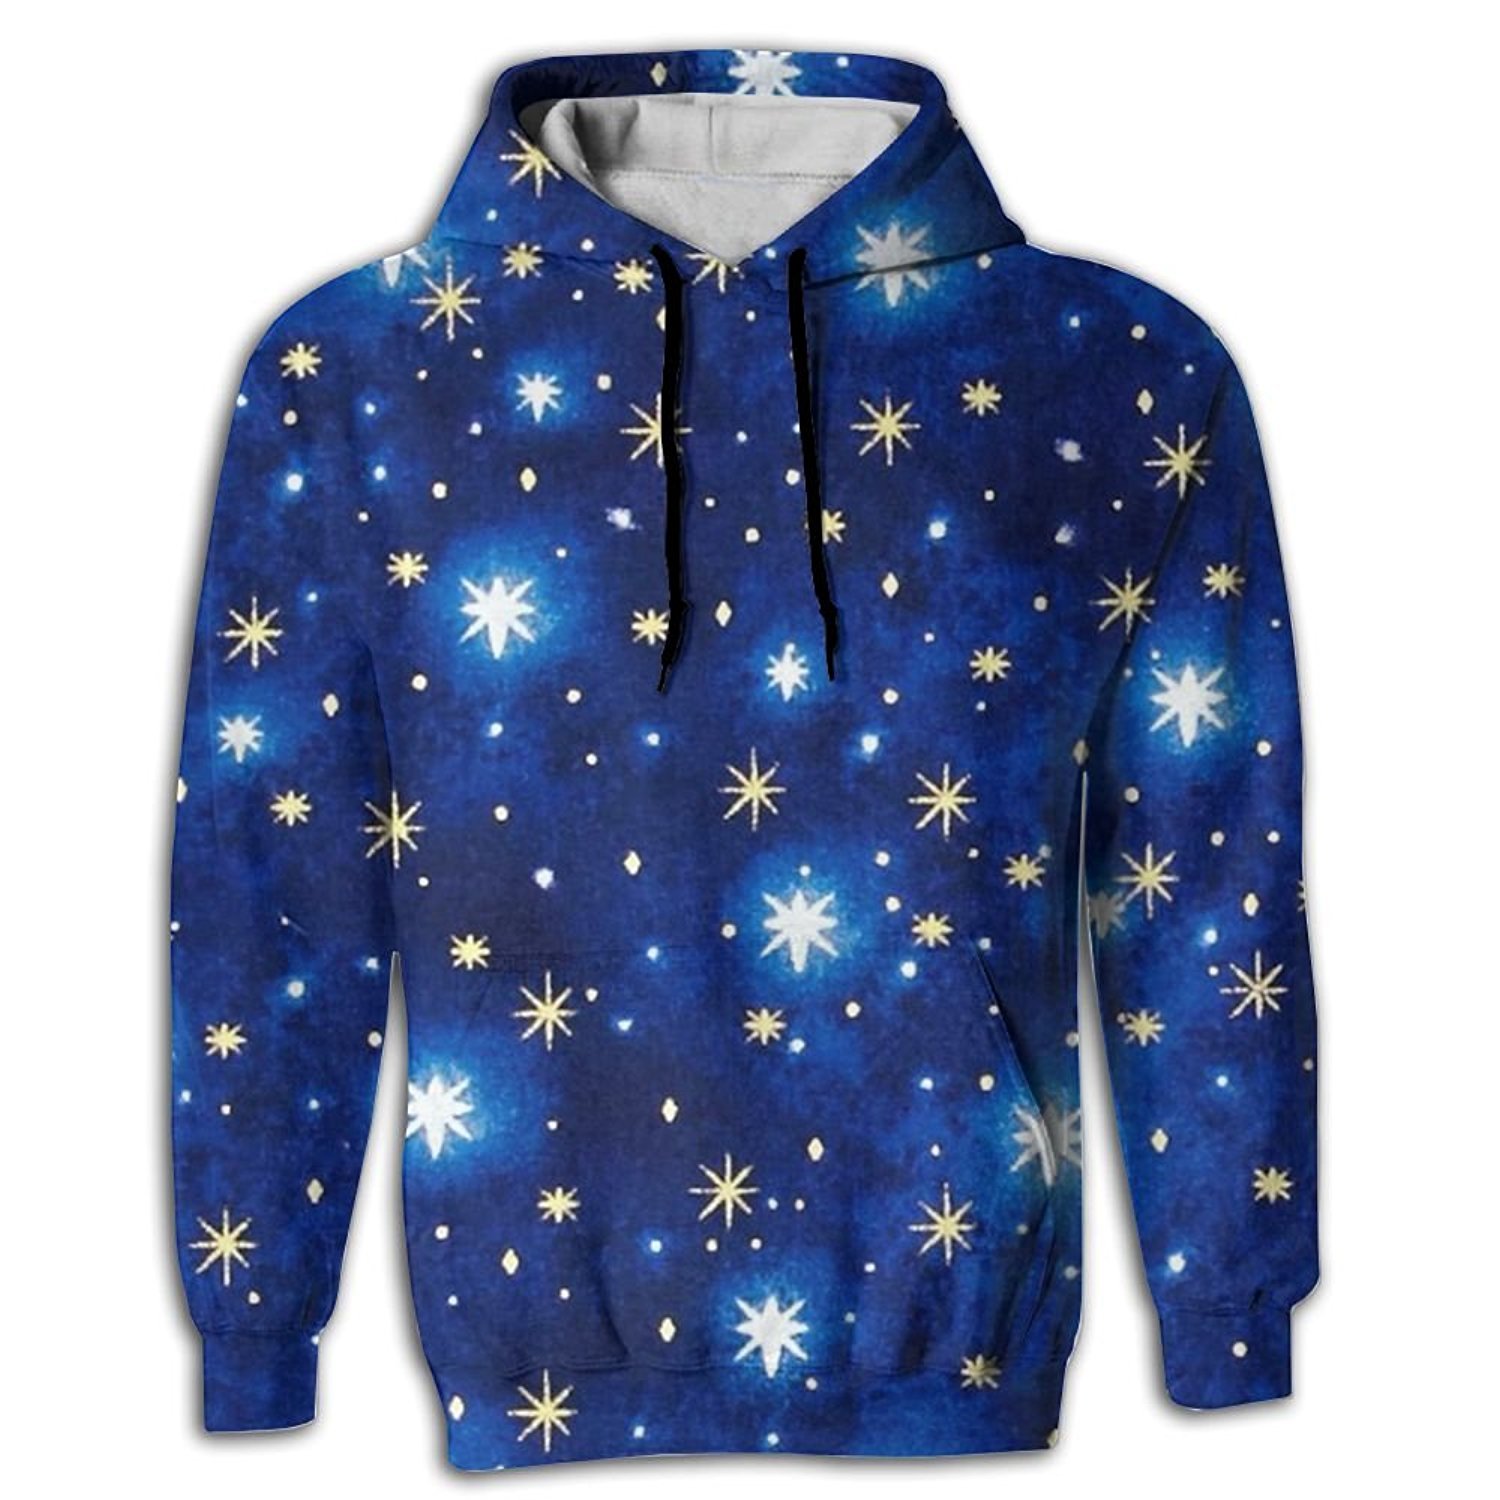 Cjhxqt Beautiful Star Cool Hoodies For Men Hoodies Pullover Custom  Sweatshirts For Men ef2ad153a